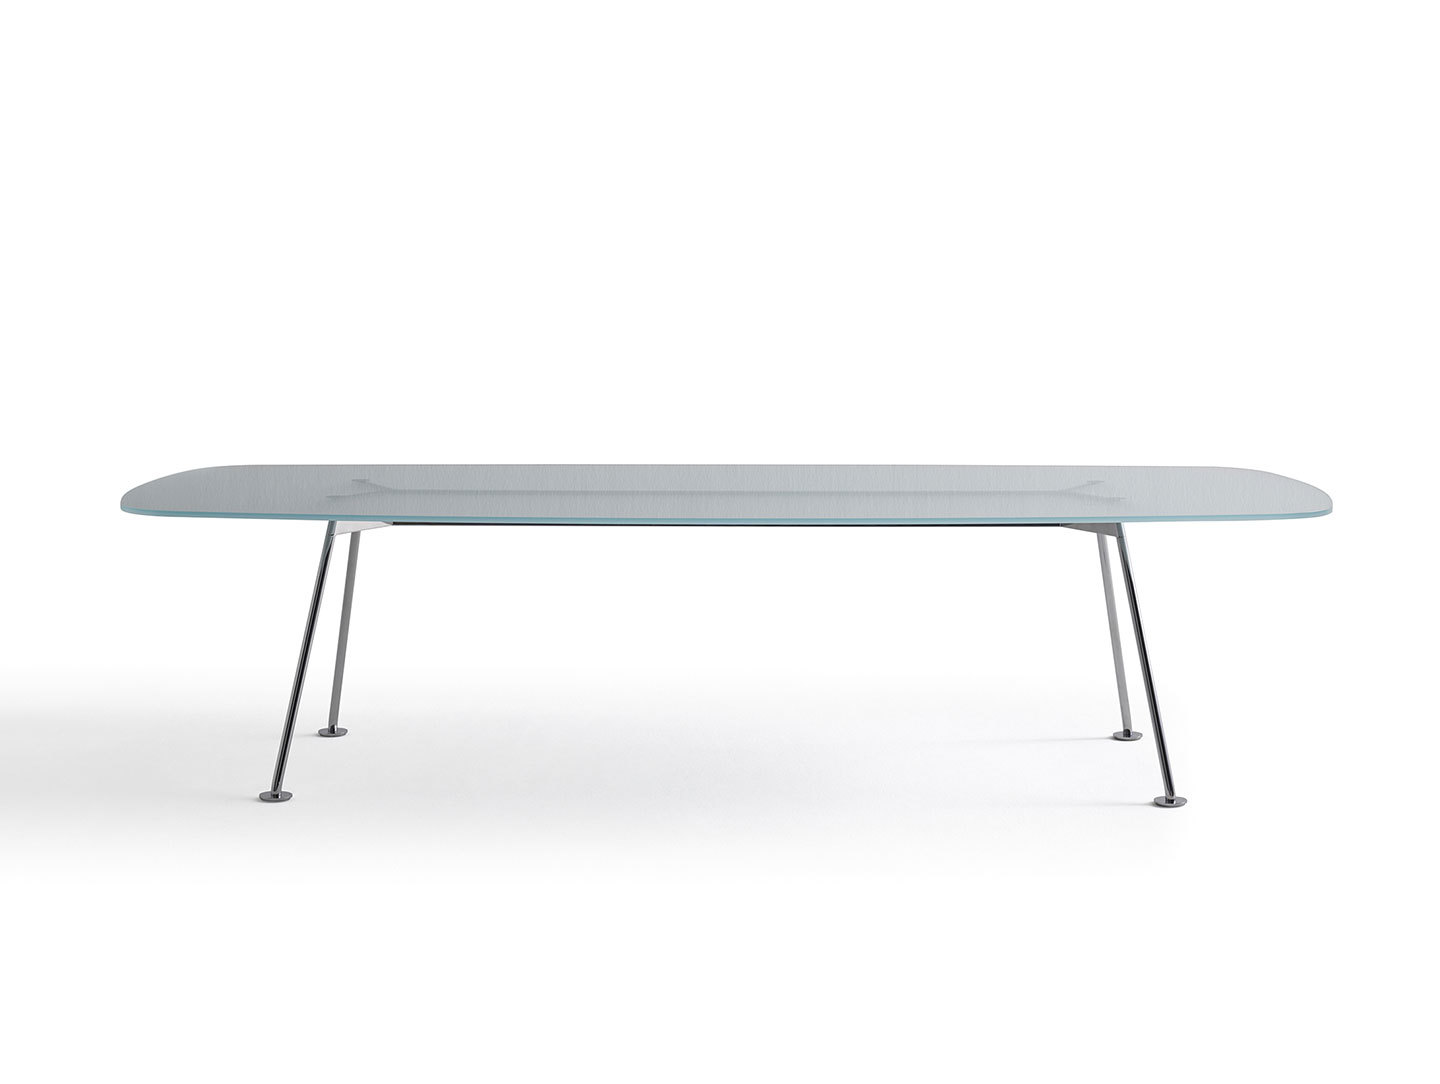 Knoll Grasshopper Table Glass Piero Lissoni